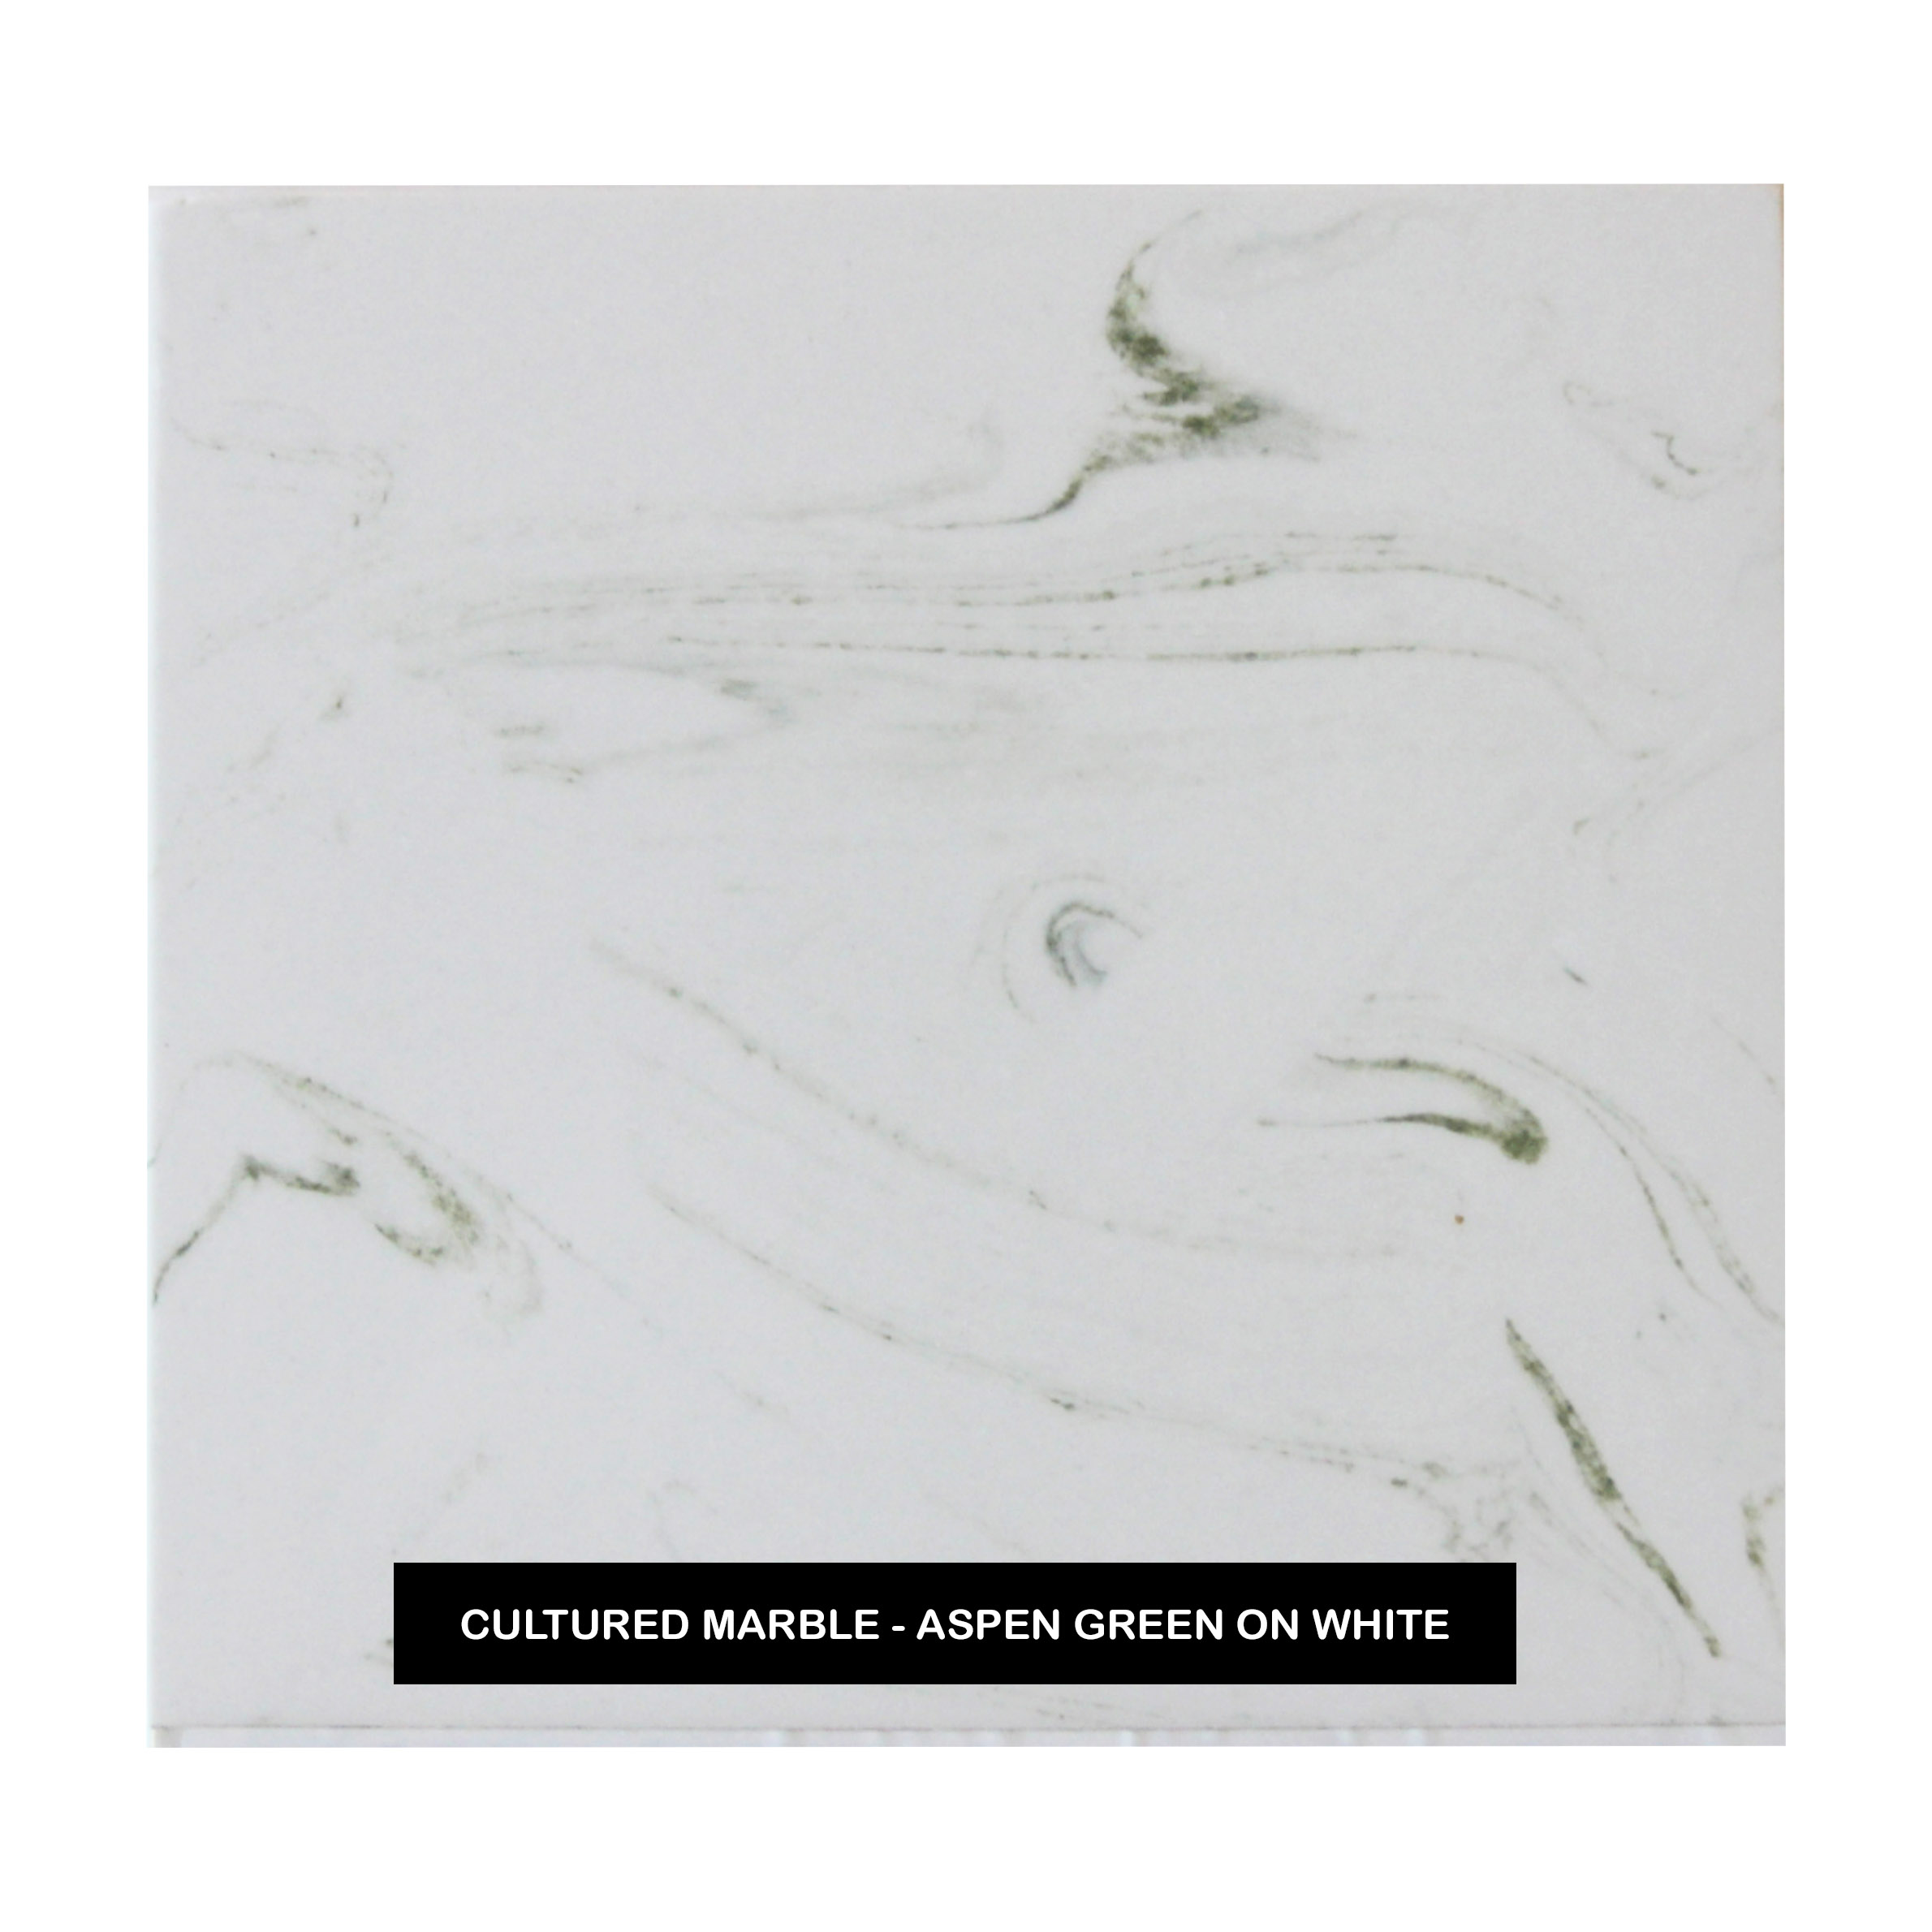 Cultured Marble - Aspen Green on White